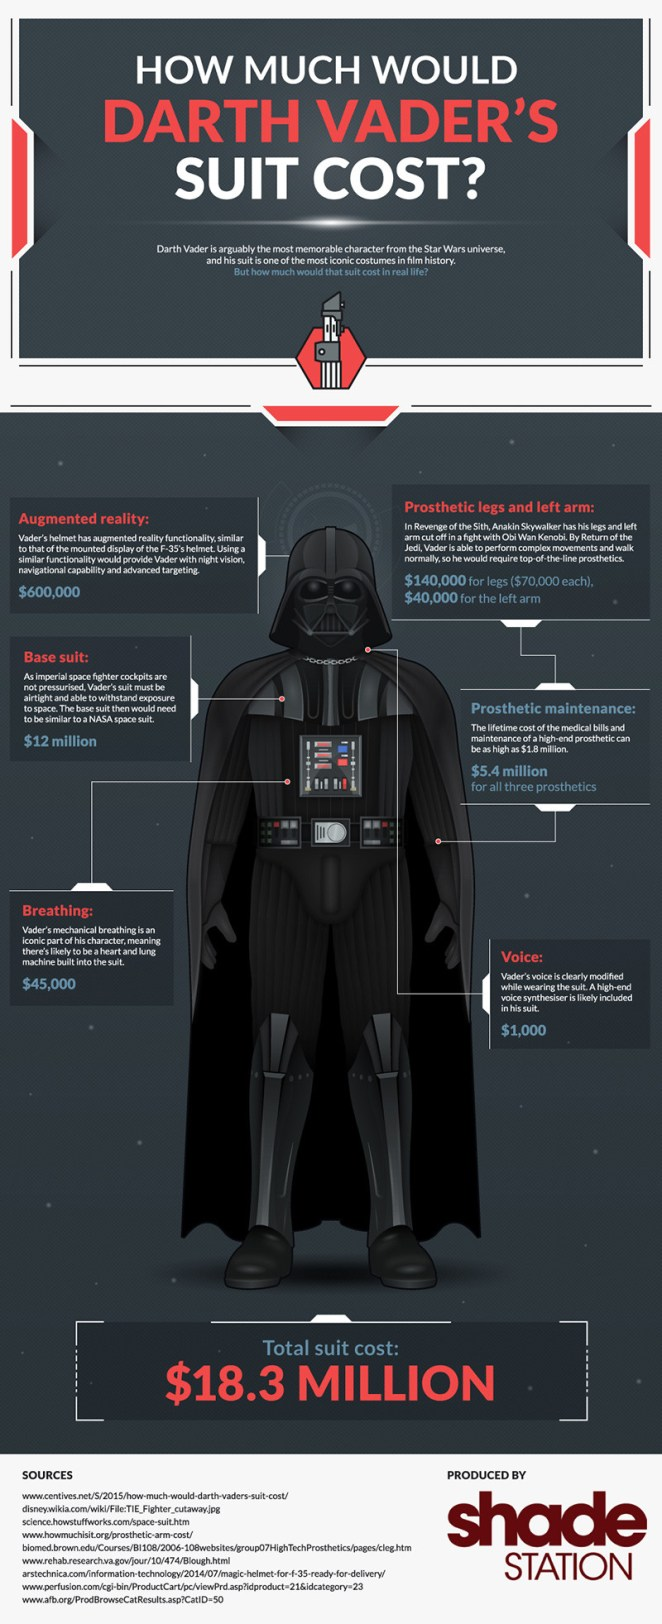 How Much Would Darth Vader's Suit Cost in Real Life? - Sublime99